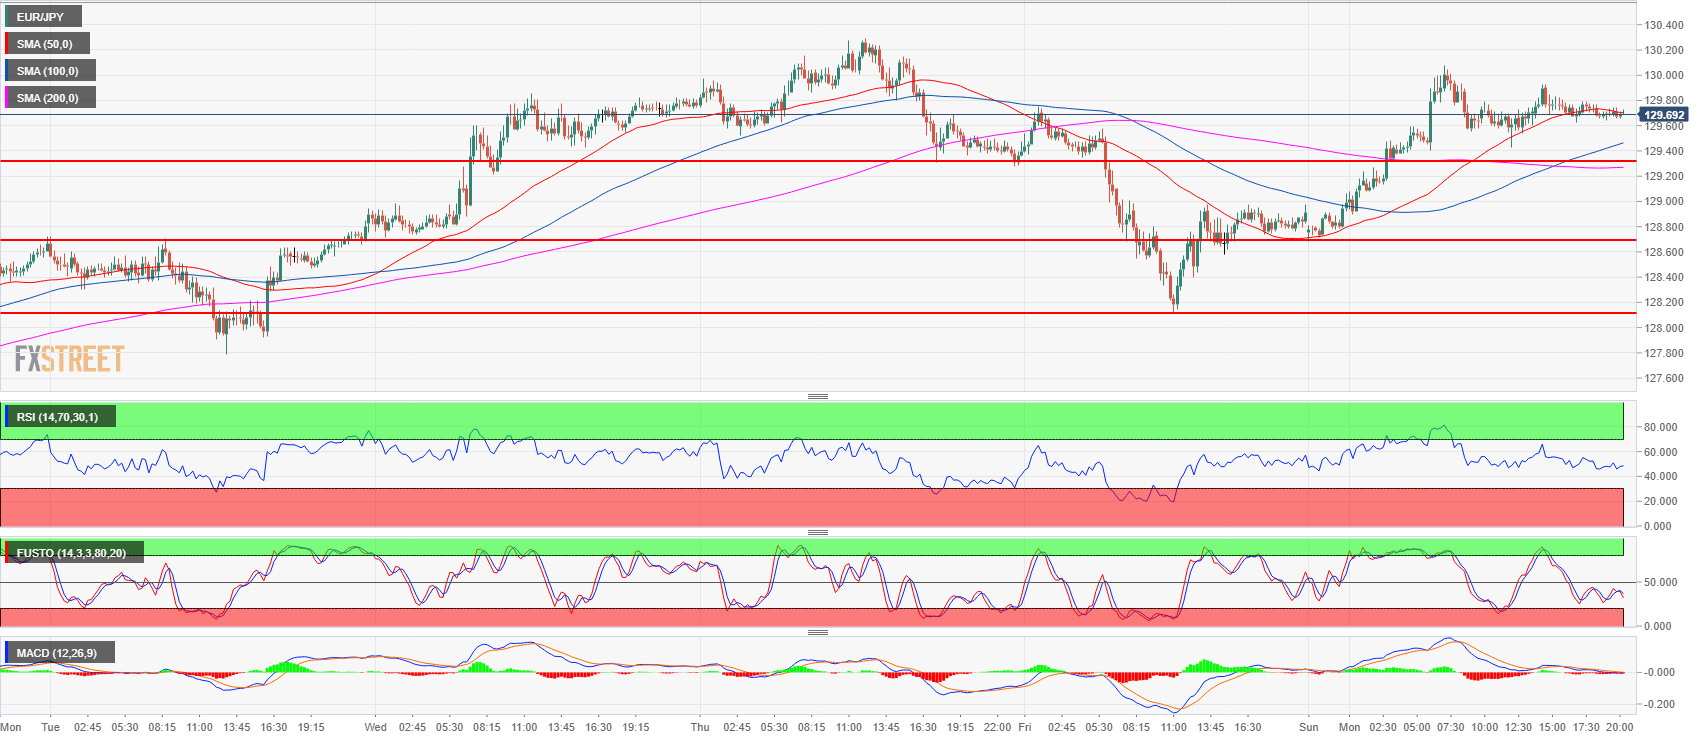 EUR/JPY Technical Analysis: Consolidates after 100-pip gain as EUR/JPY fails to break above last week's high